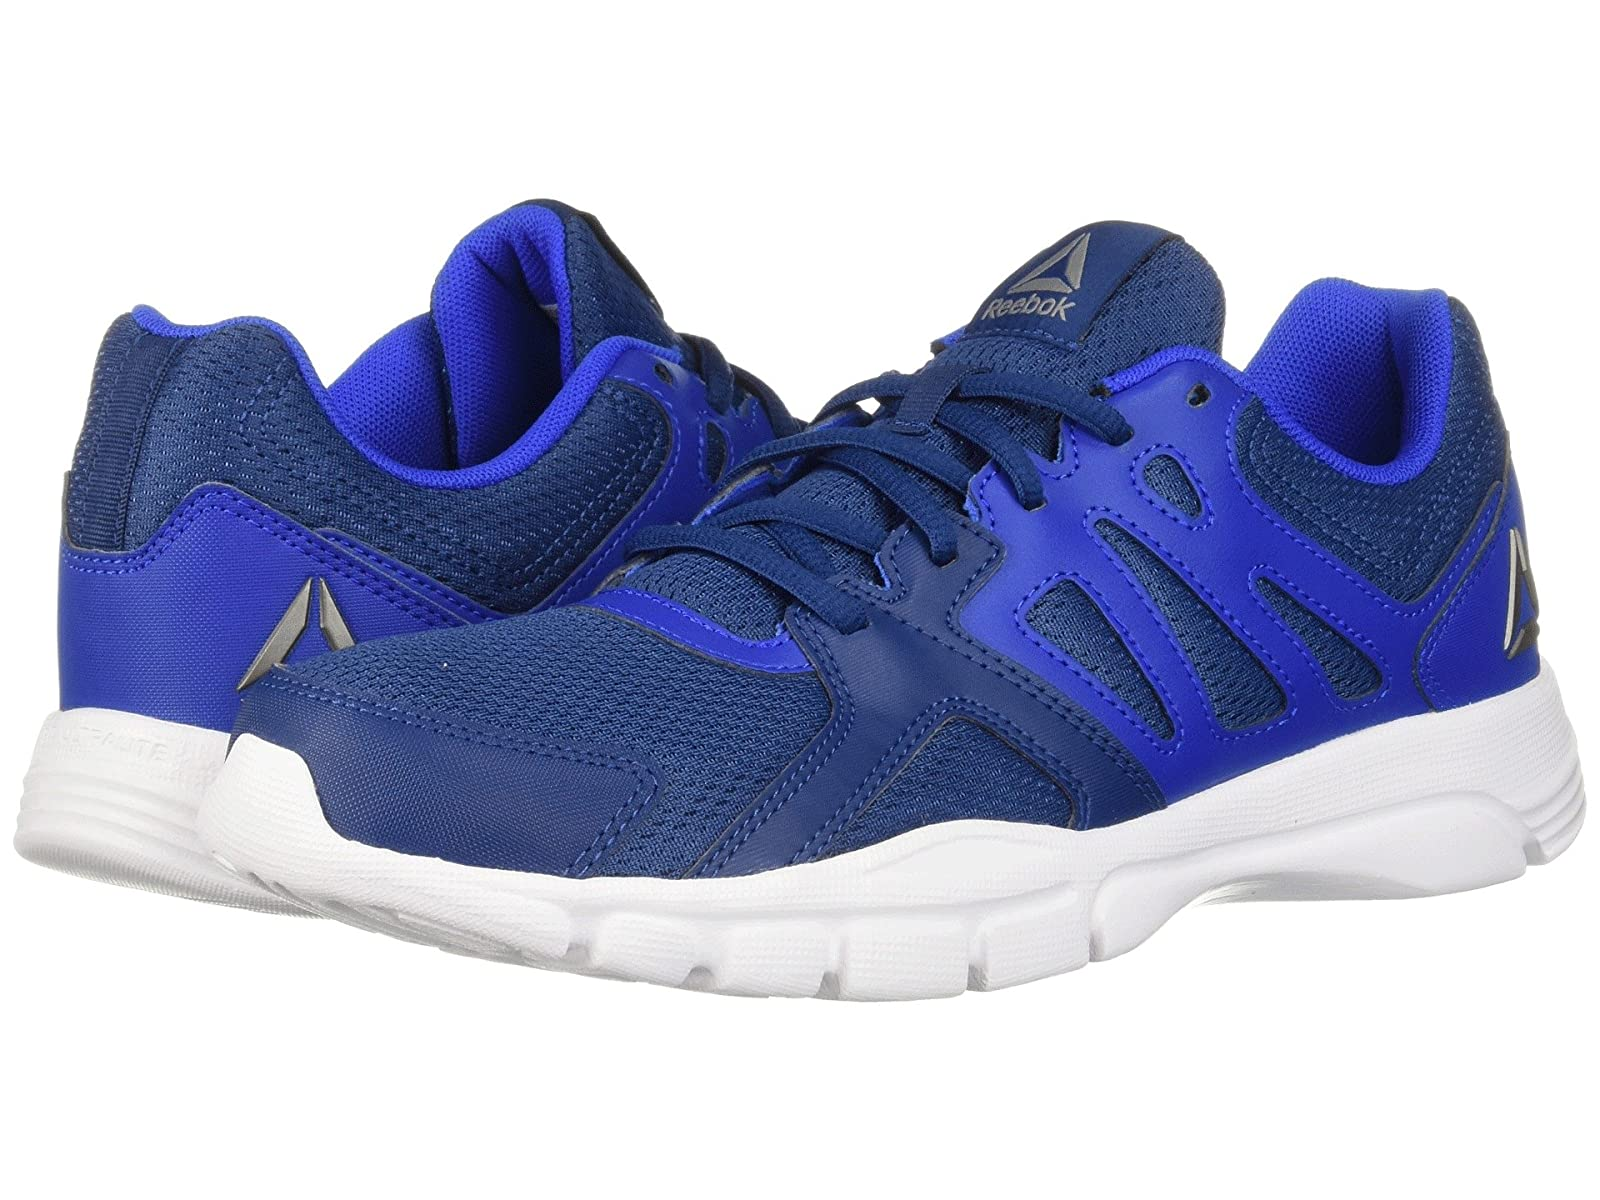 Reebok Trainfusion Nine 3.0Cheap and distinctive eye-catching shoes